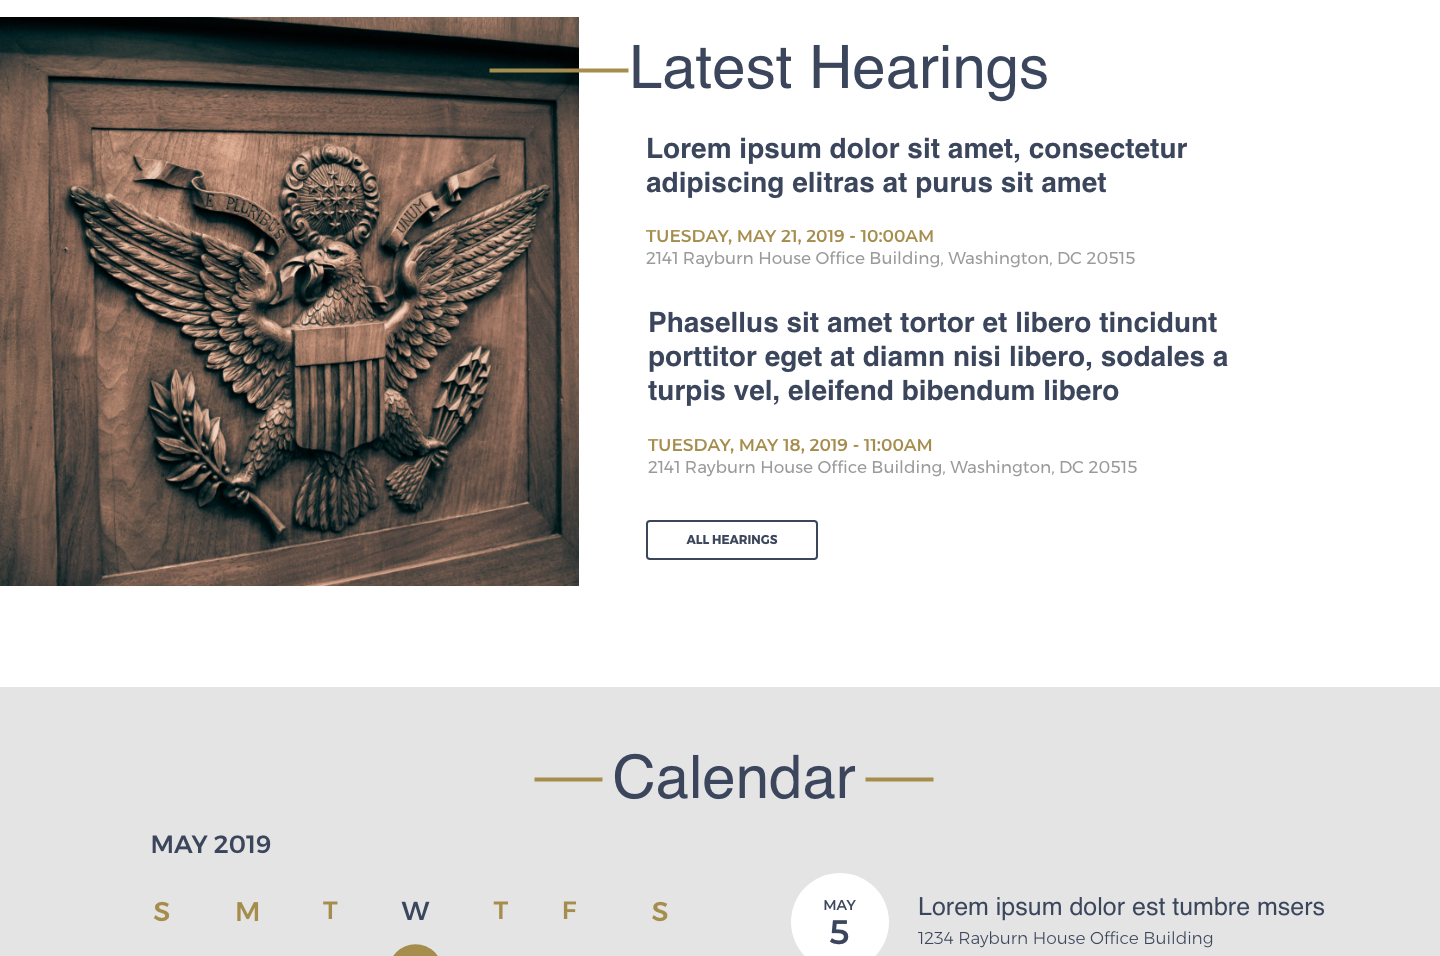 House Committee on the Judiciary<small>Latest Hearings</small>